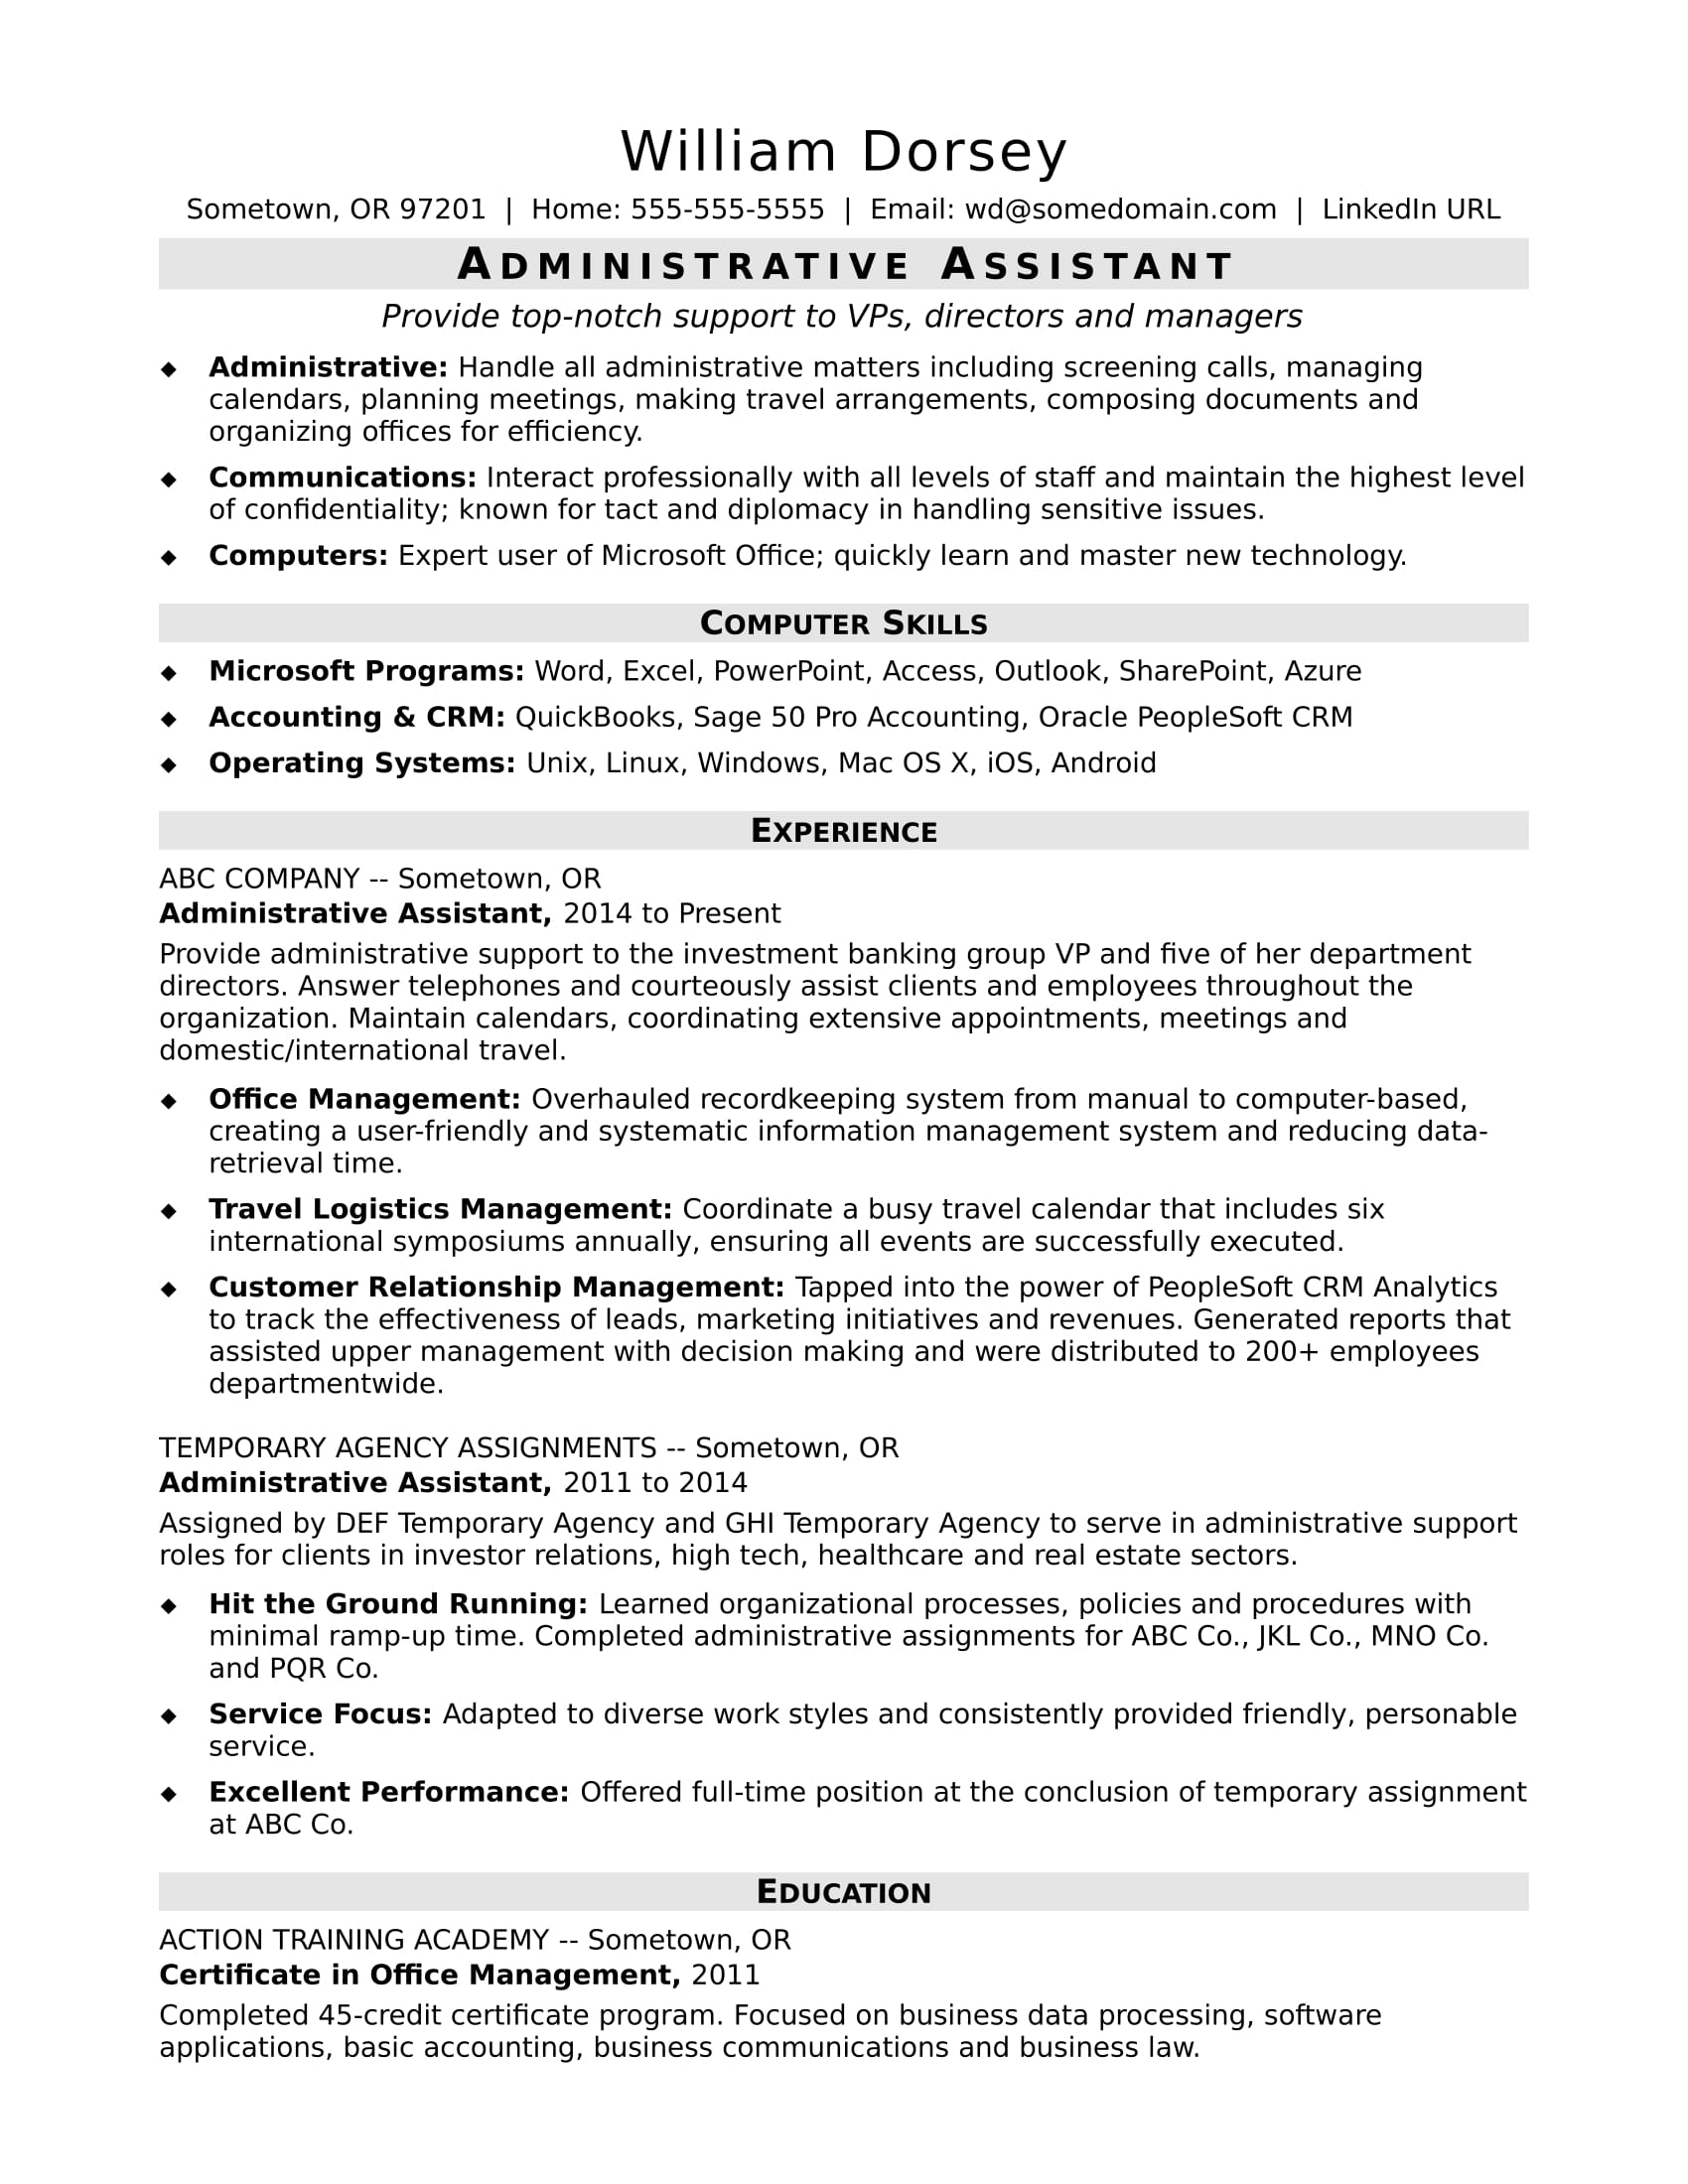 Awesome Sample Resume For A Midlevel Administrative Assistant Idea Sample Resume Of Administrative Assistant